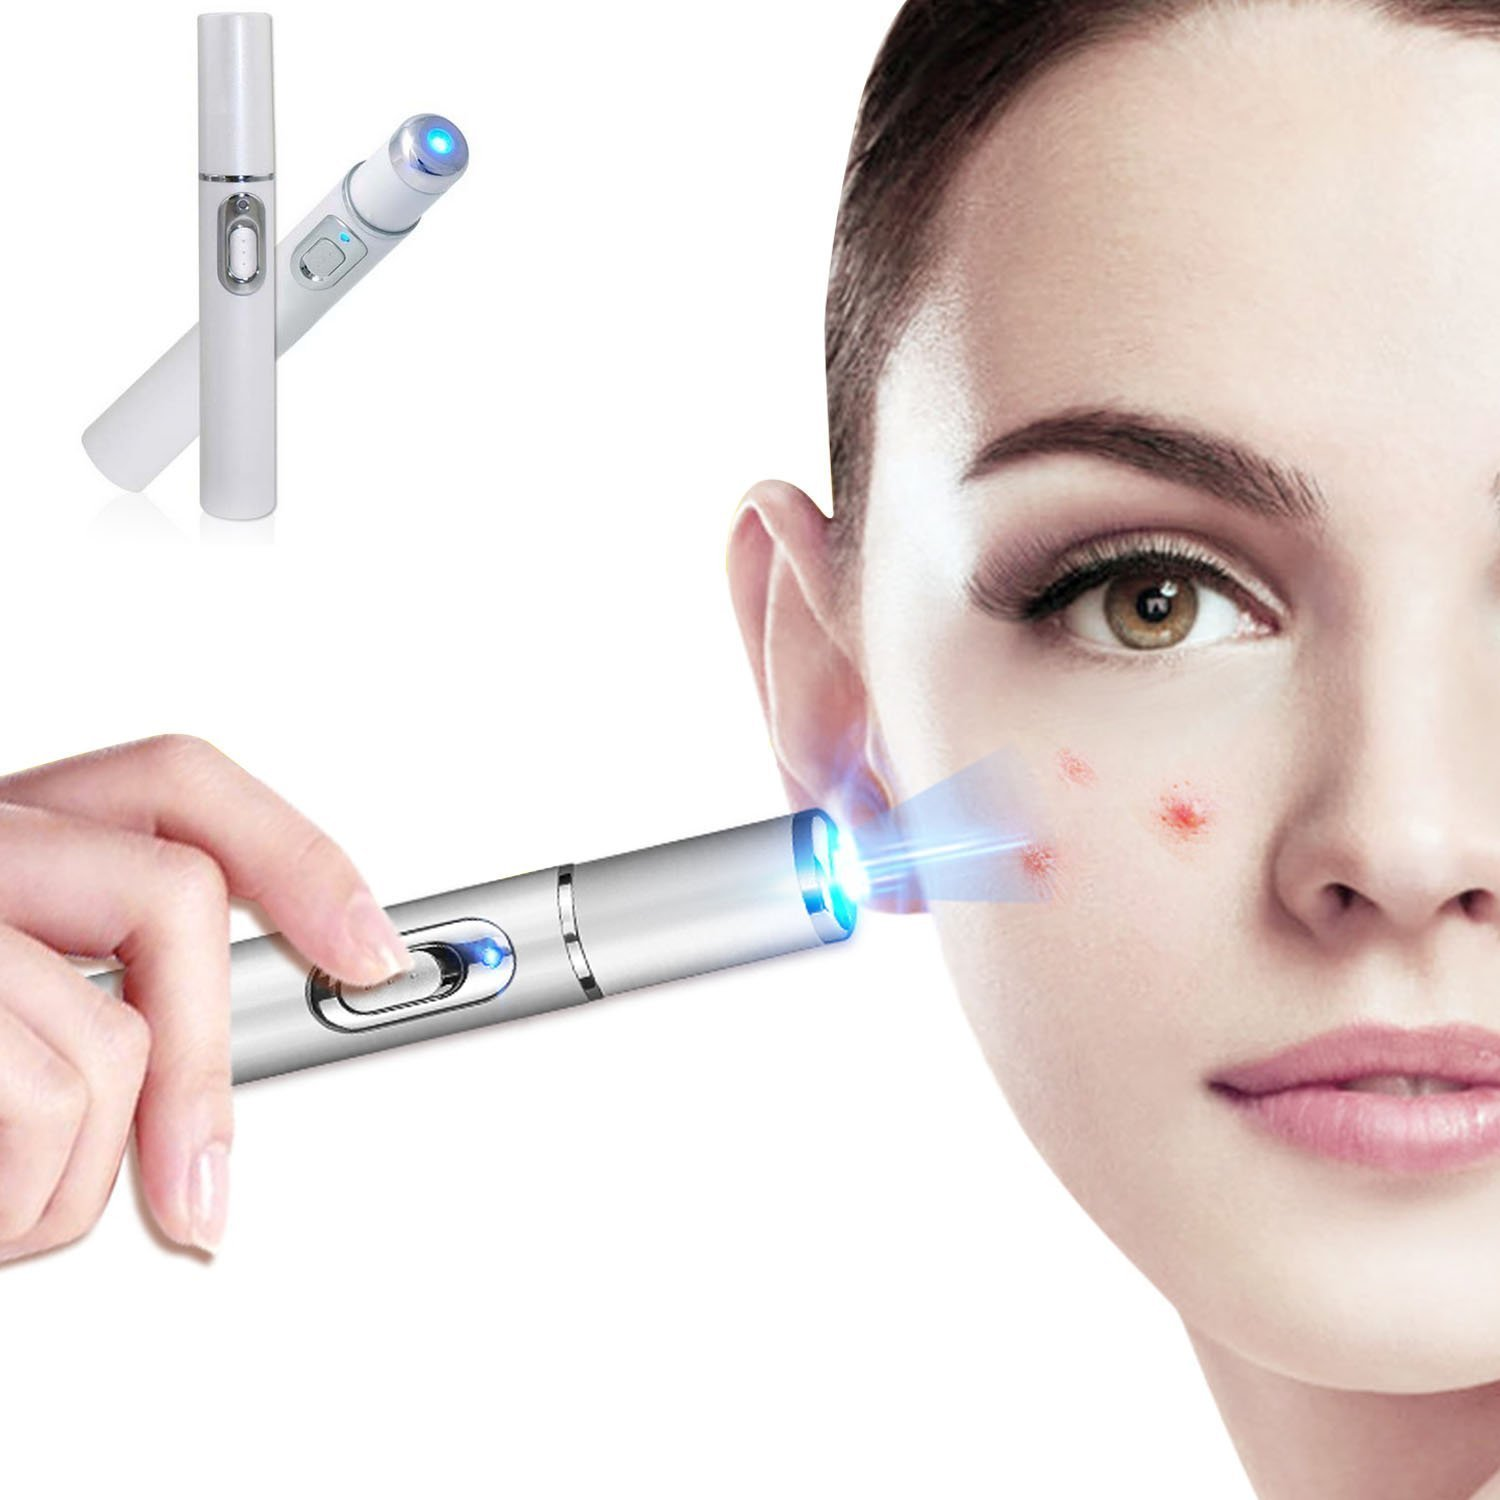 Personal Care Acne Scar Blemishes Pimples Zits redness swelling clearing removal therapy machine, BIO Anti-inflammation, 415nm warm Blue Light Lymph Detoxification